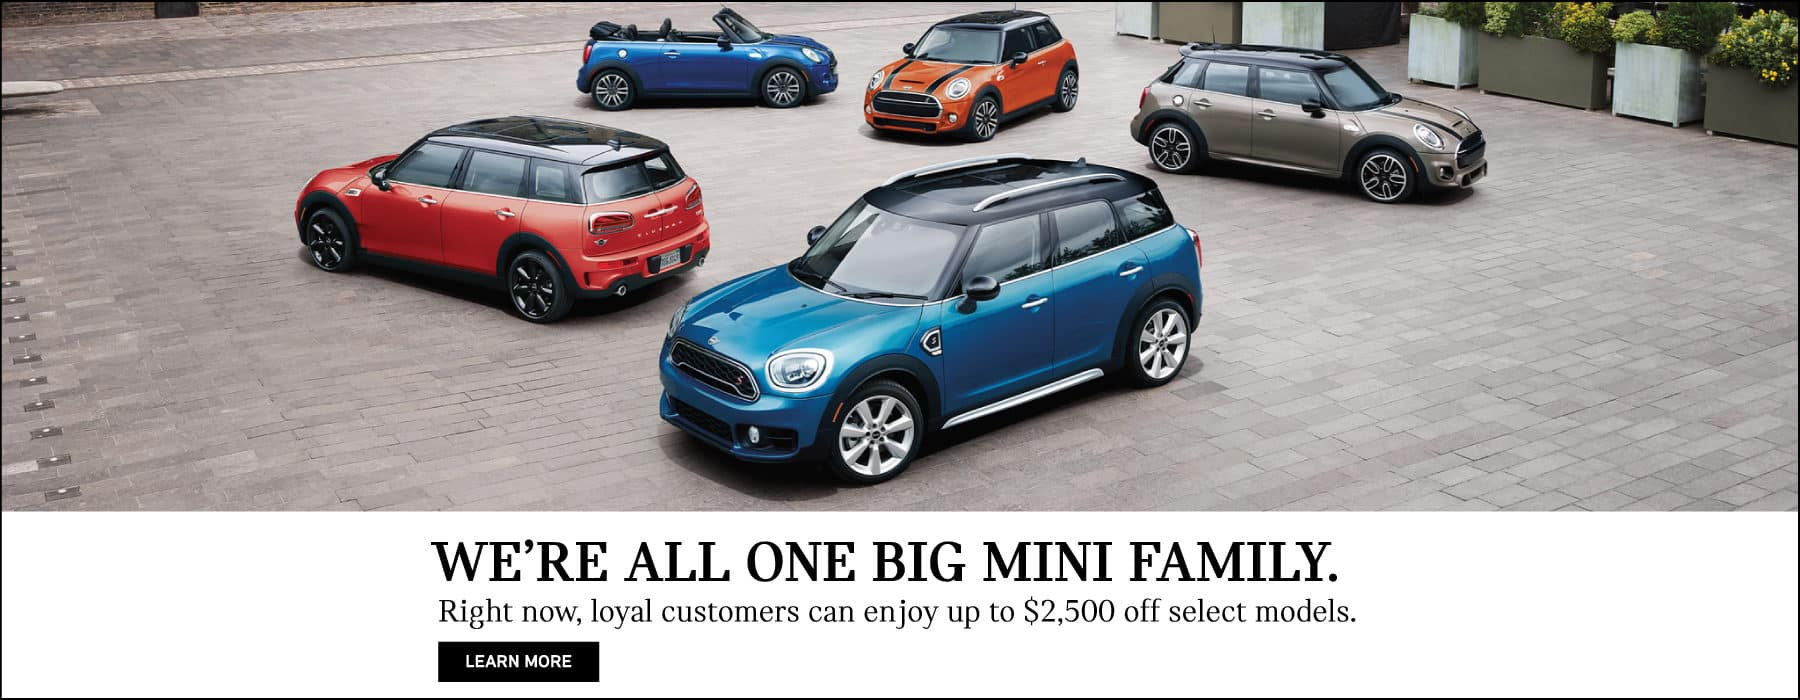 we're all one big mini family. Right now, loyal customers can enjoy up to $2,500 off select models. Learn more